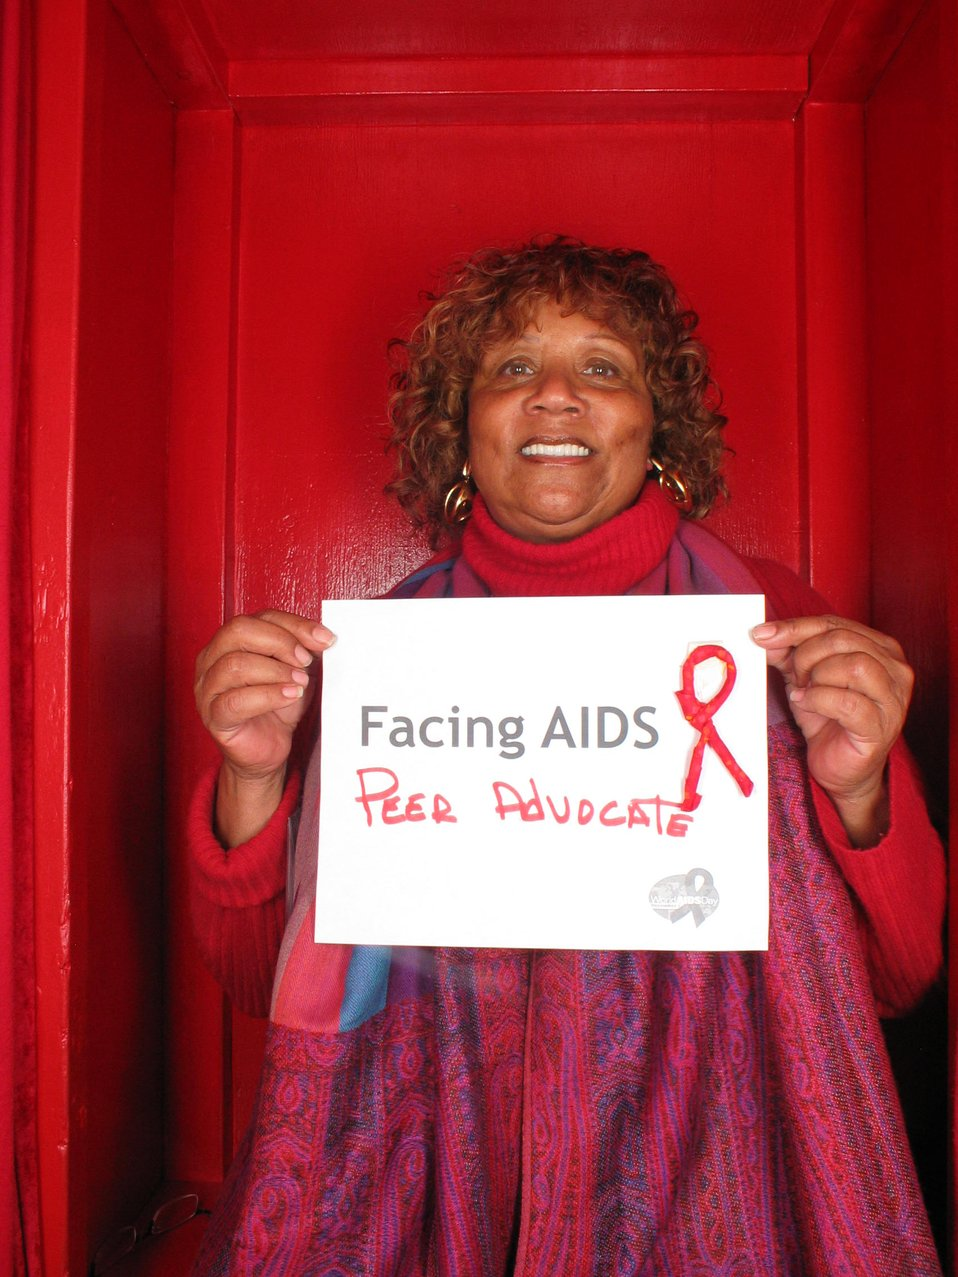 Facing AIDS Peer Advocate